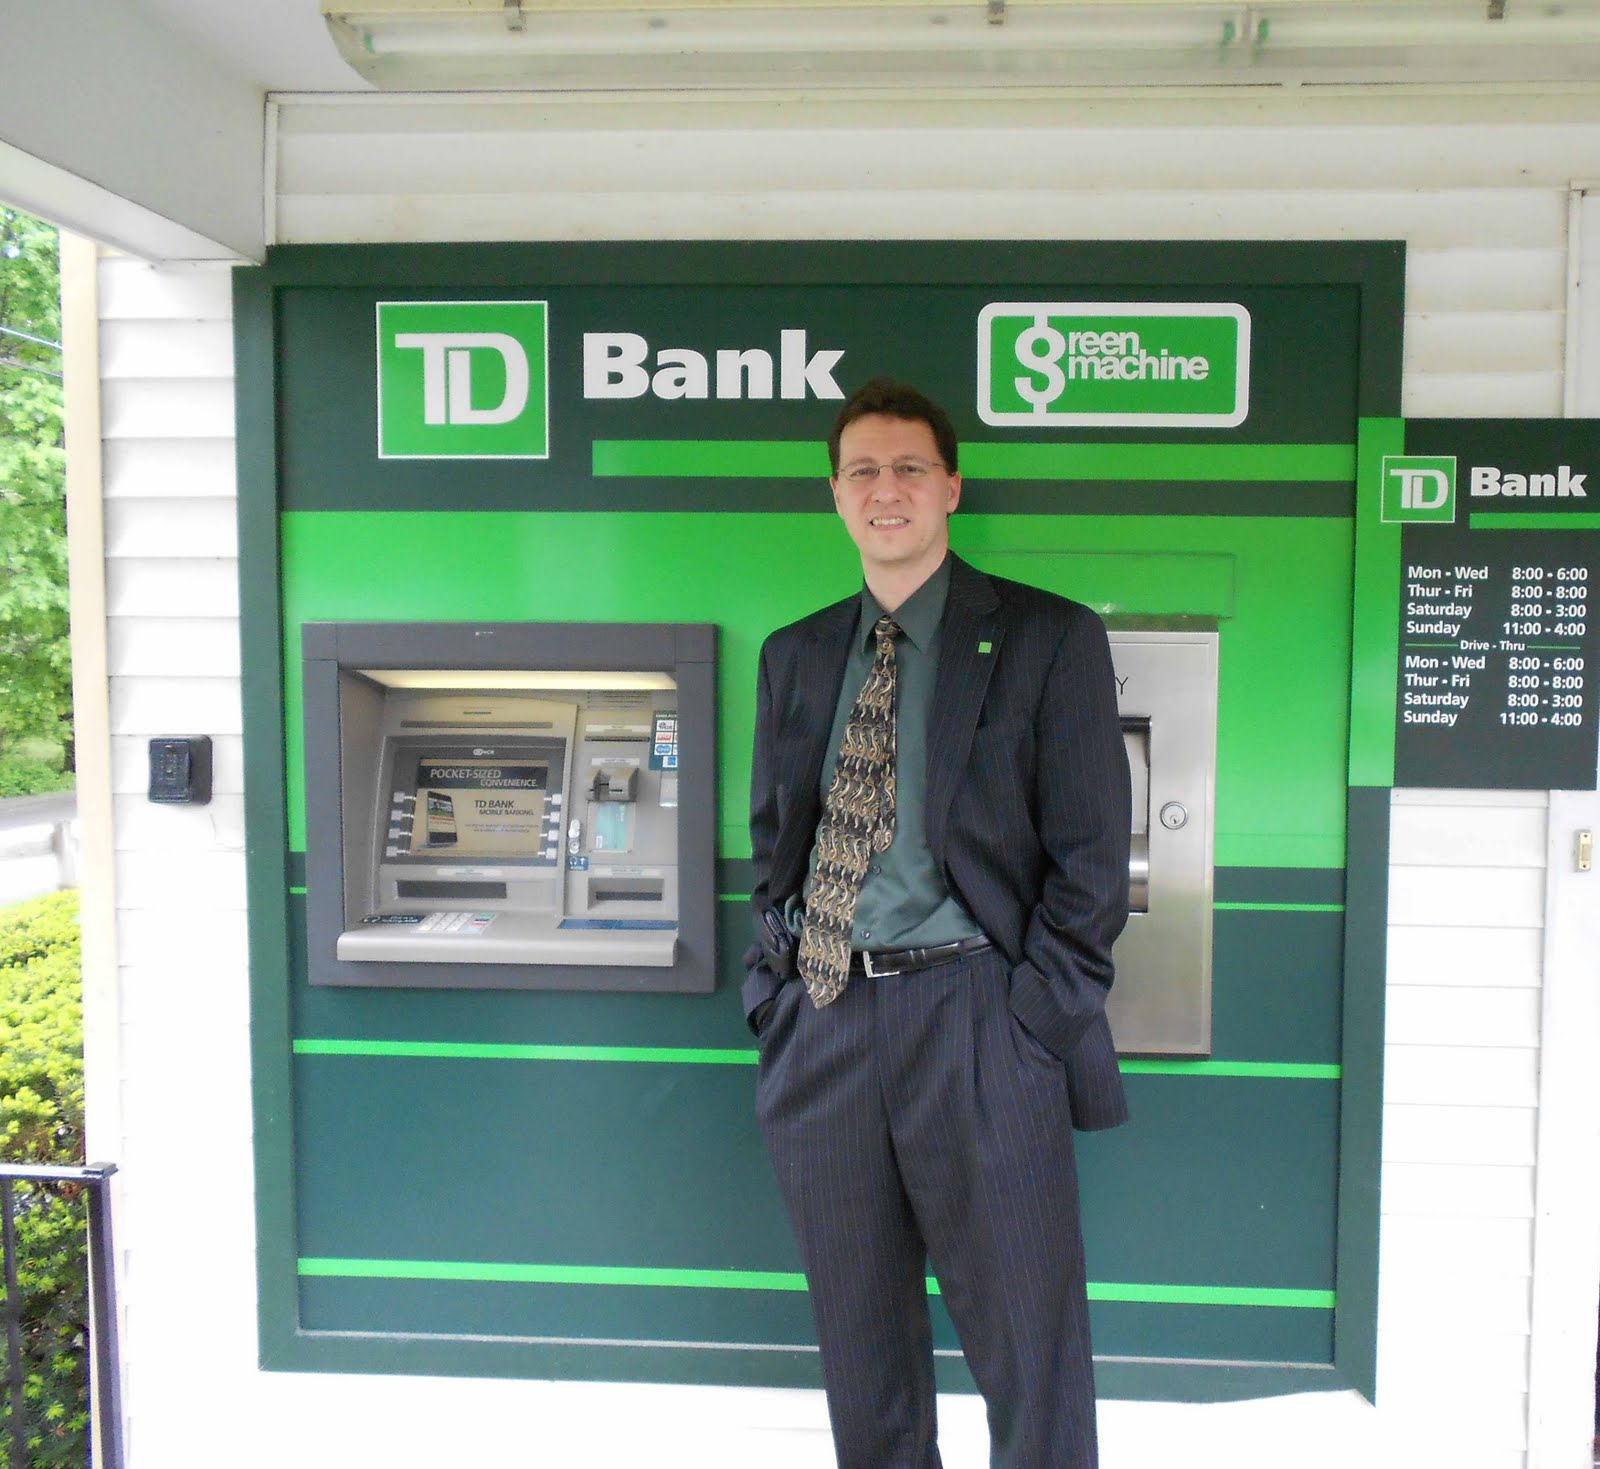 closest td bank branch